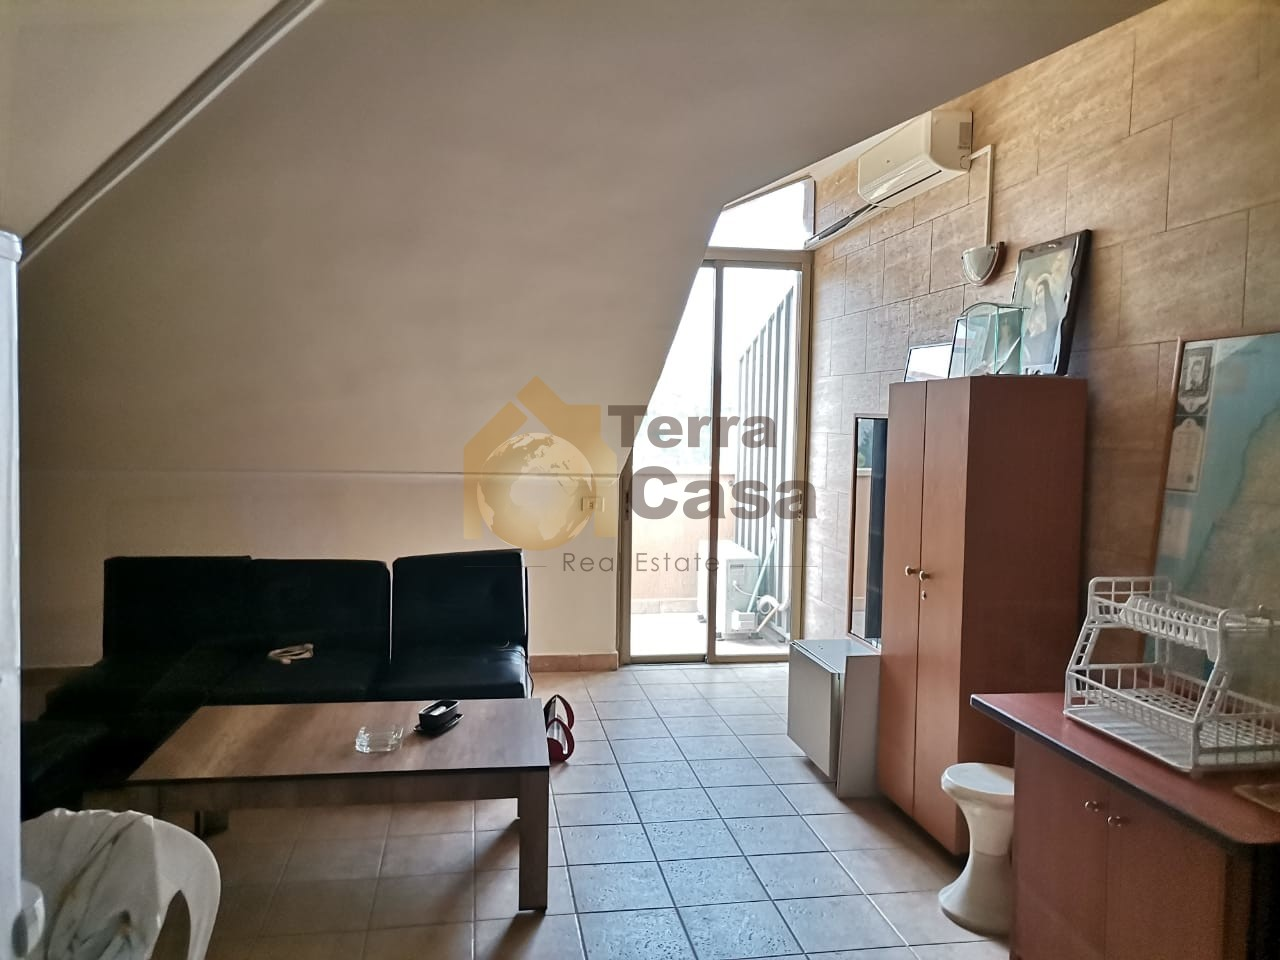 Fully furnished one bedroom apartment cash payment.